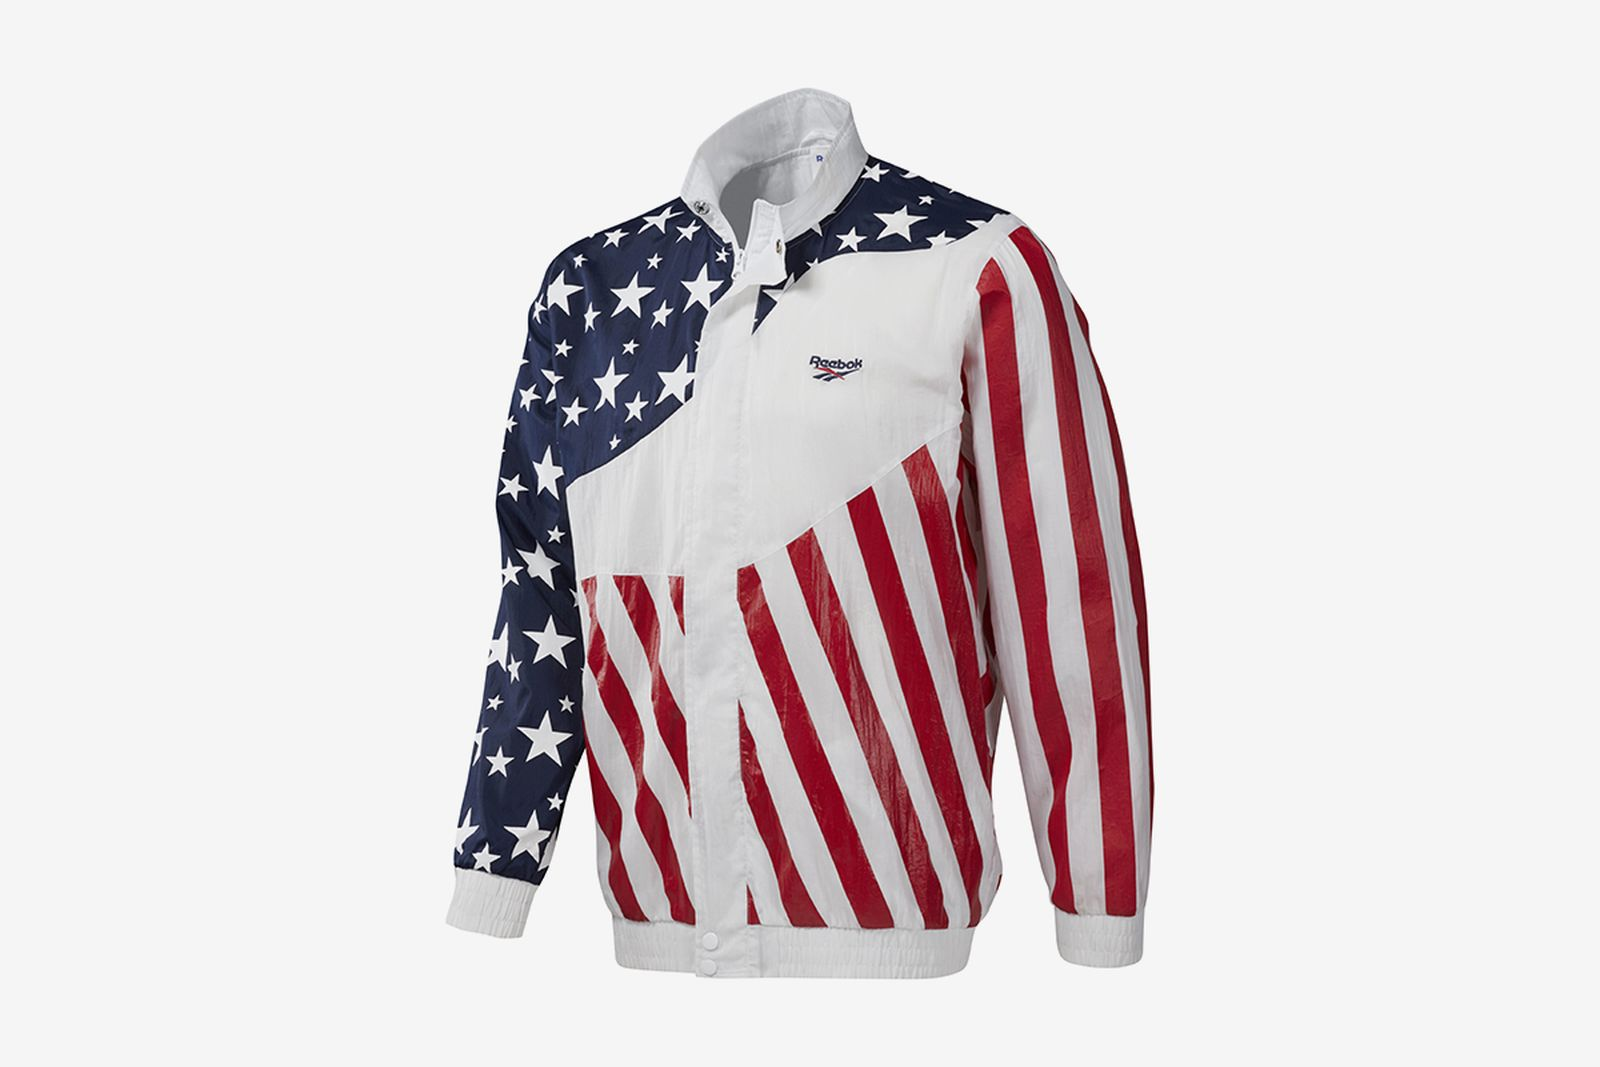 Reebok USA track jacket